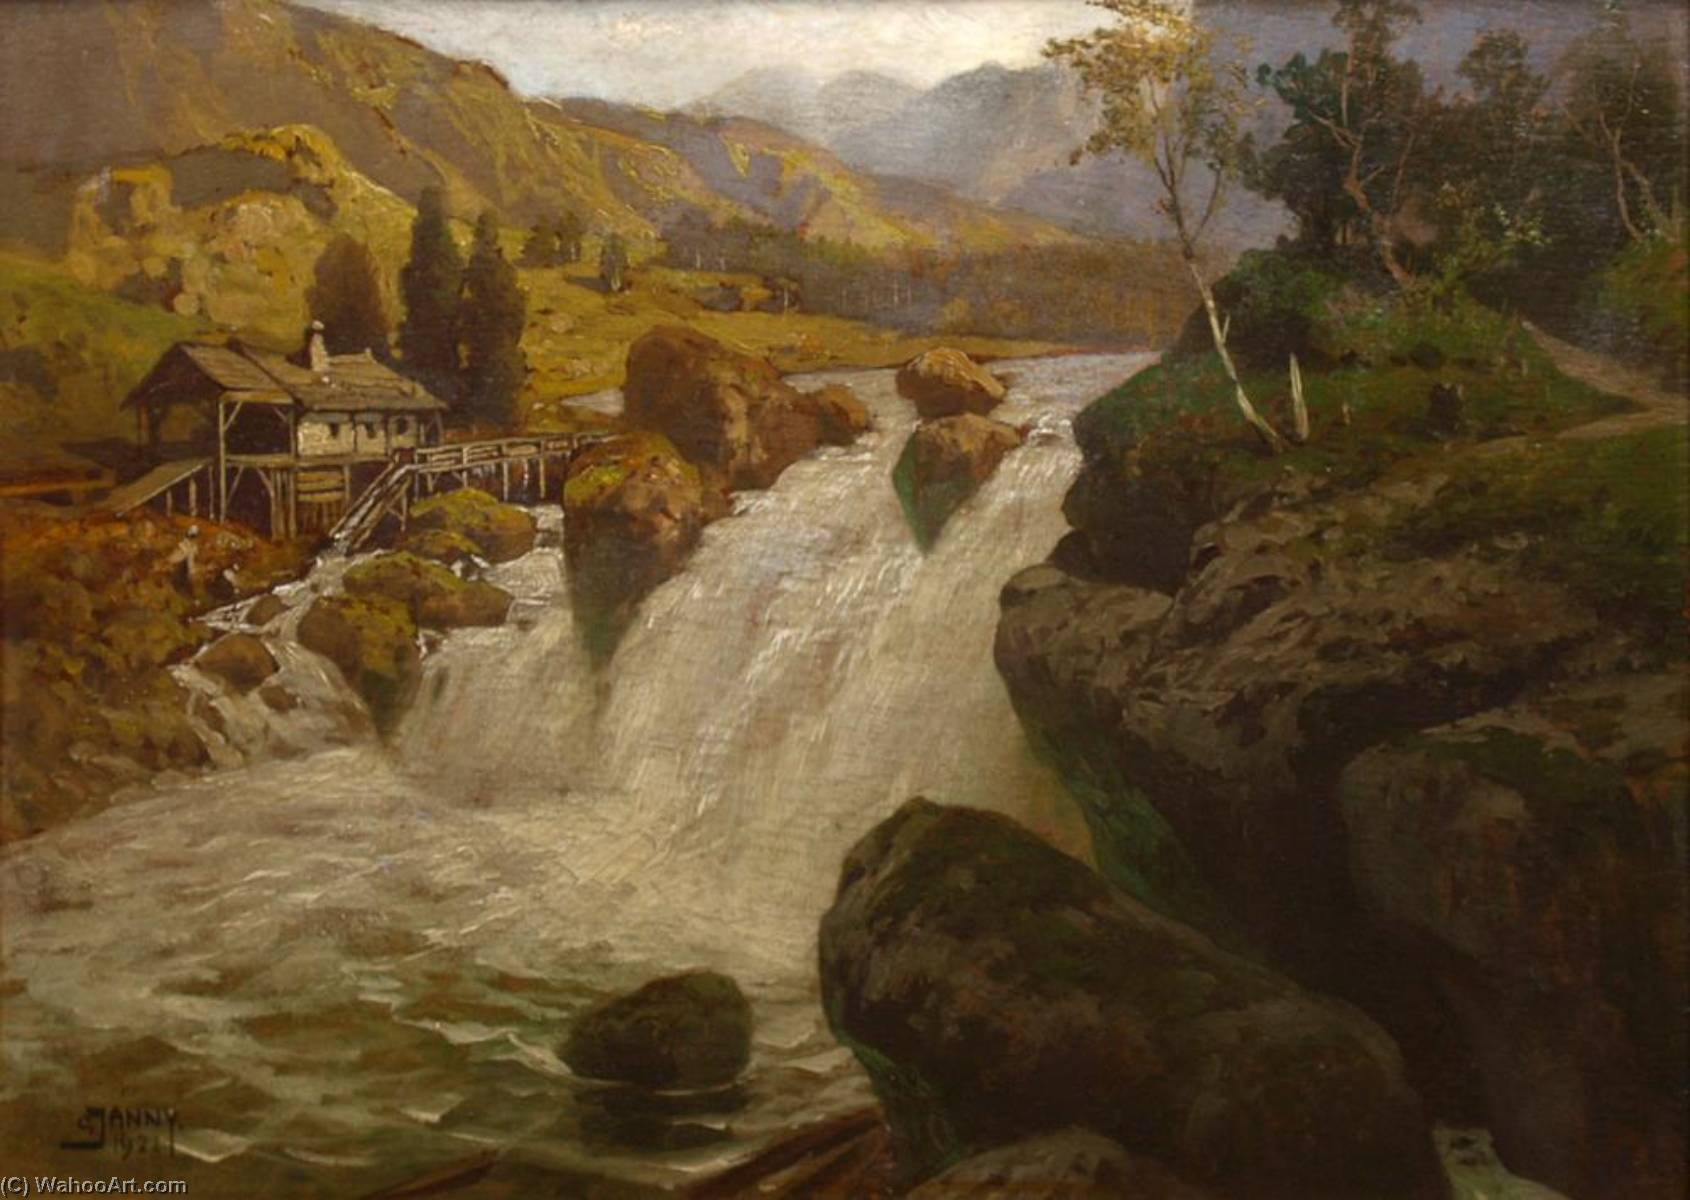 Mill at a River, Oil On Panel by Georg Janny